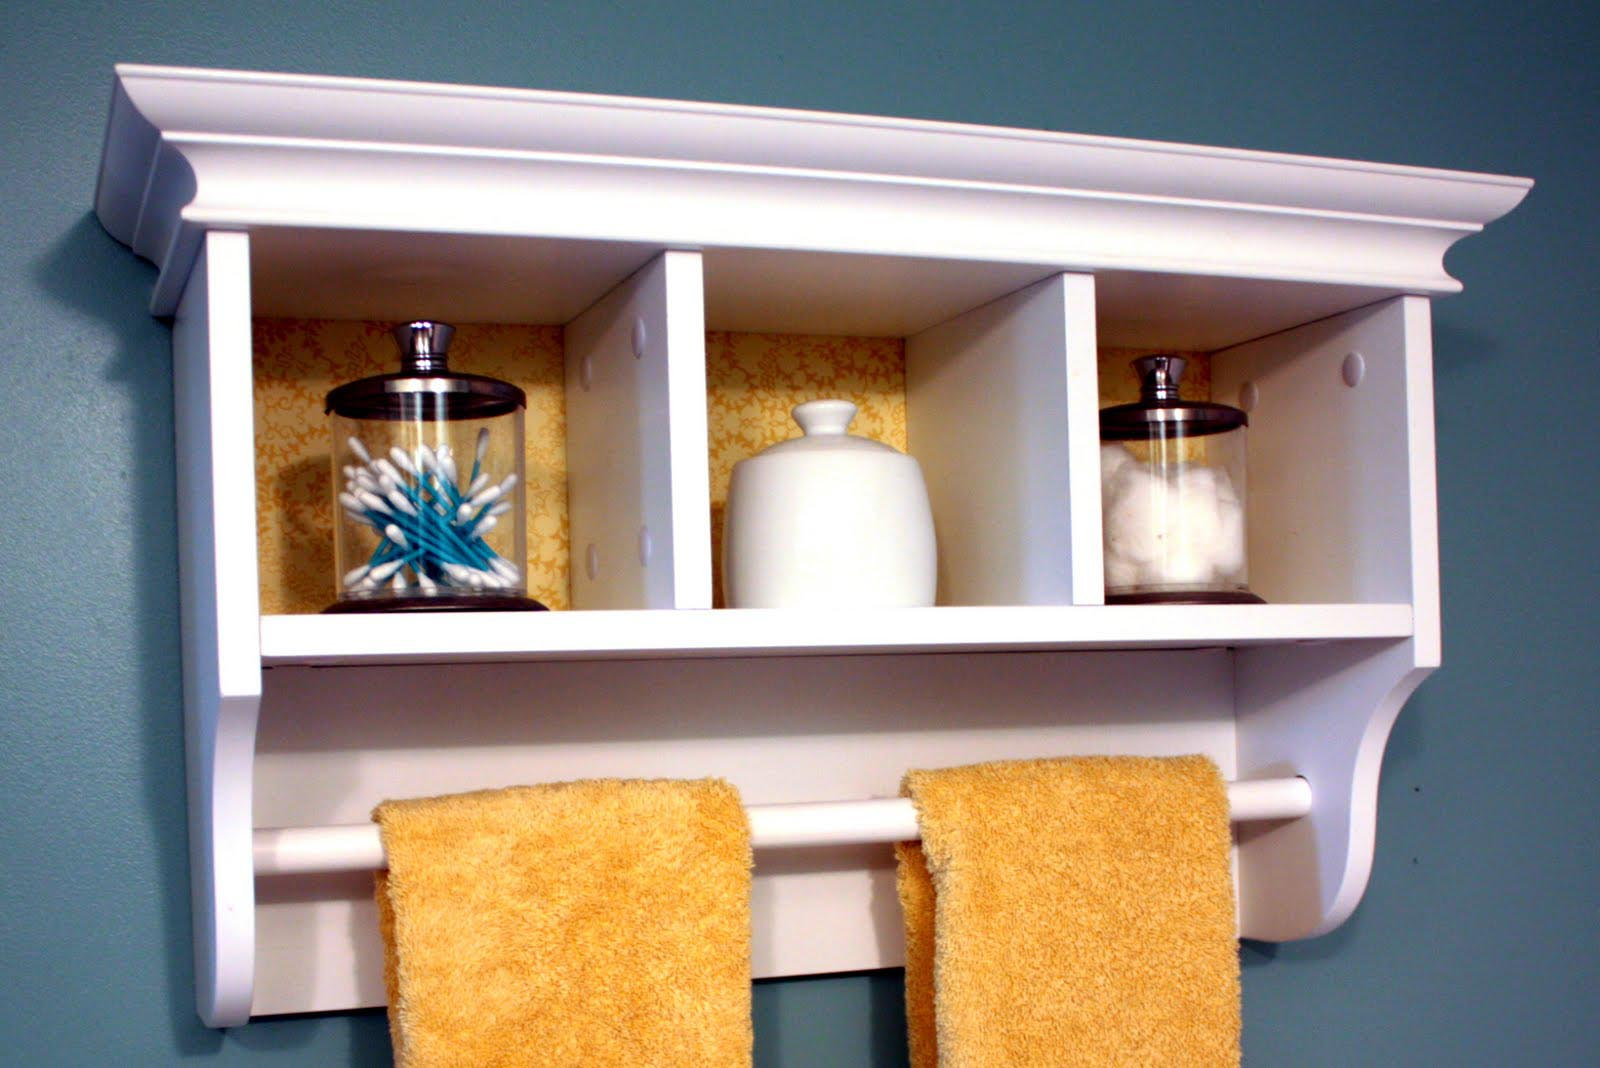 Decorative Wall Shelves For Bathroom : Small wall shelves bathroom best decor things